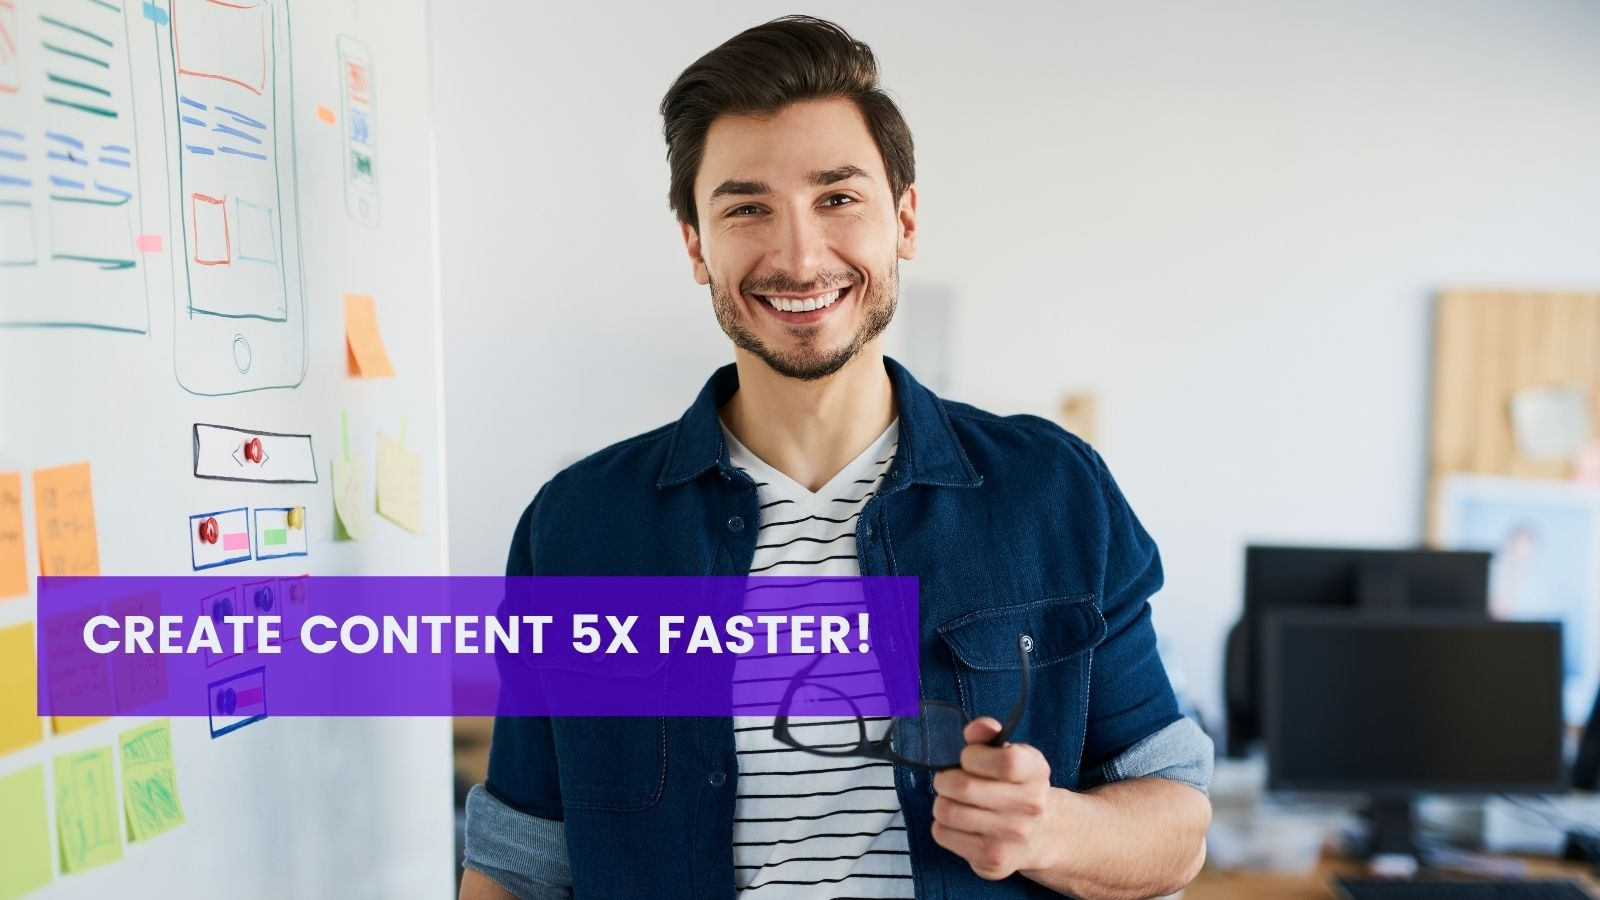 Creating content 5 times faster with Agility CMS